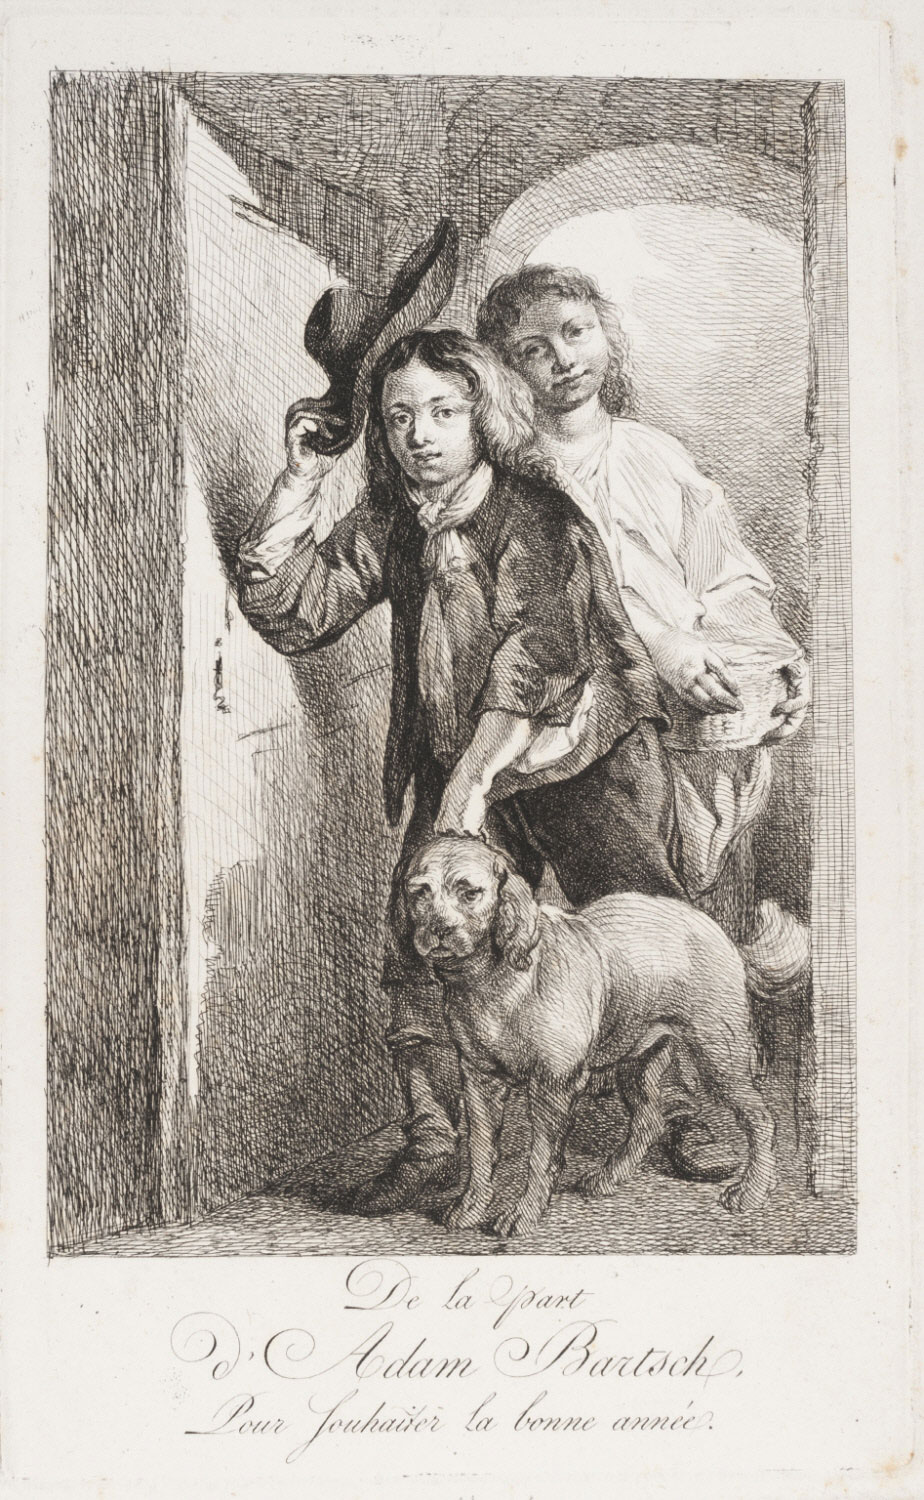 Boy with a Spaniel and Maid with a Basket, Coming through a Doorway (Bartsch's New Year's Greeting Card)